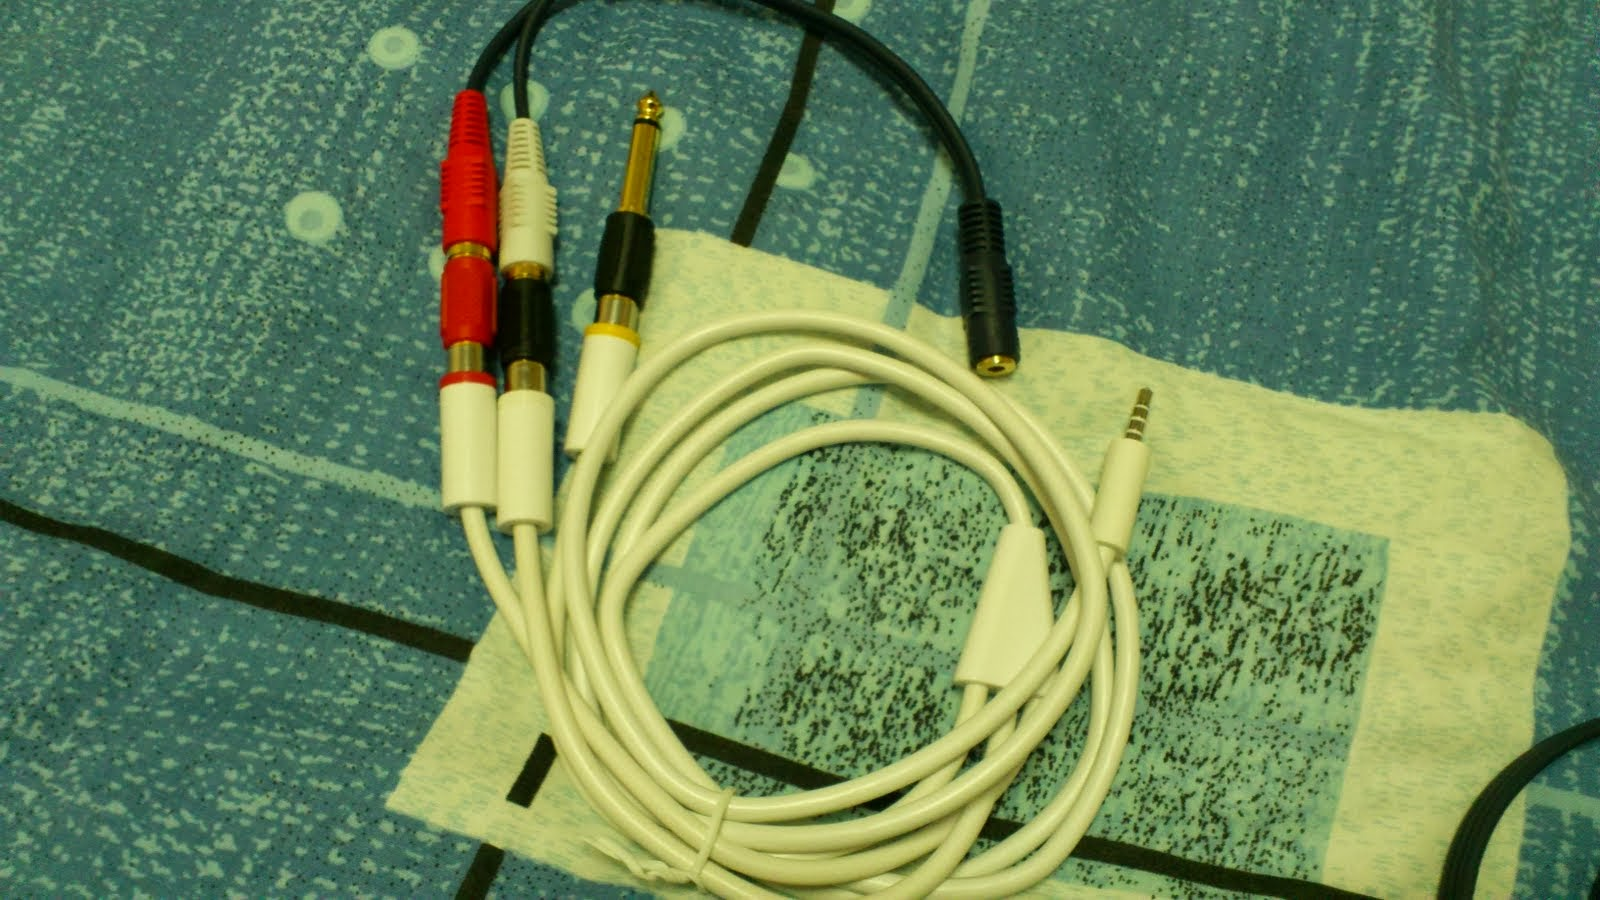 Diy Guitar Cable : diy guitar cable for ipad iphone irig diy techie karrie ~ Hamham.info Haus und Dekorationen